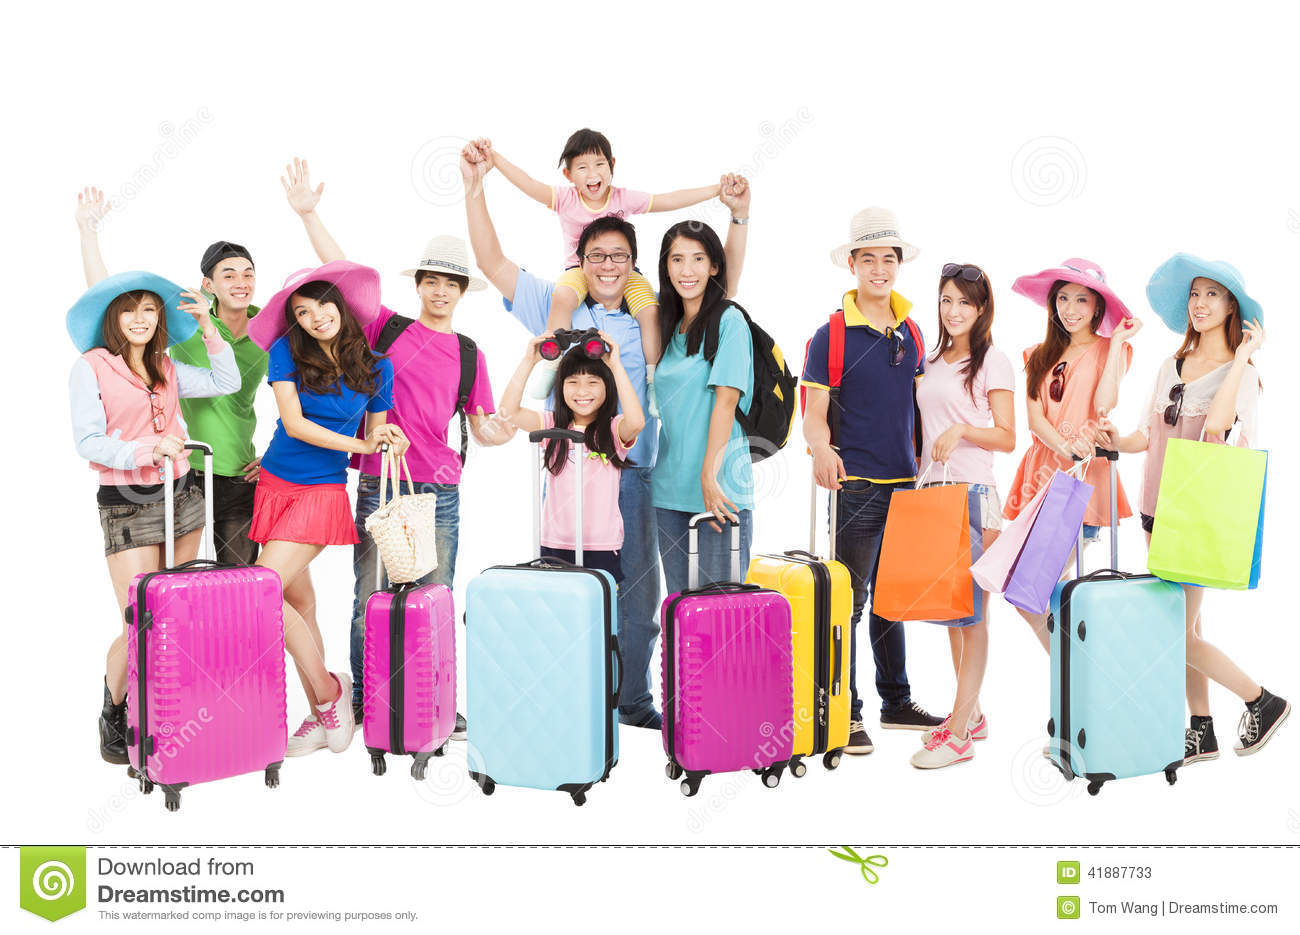 group-happy-people-ready-to-travel-together-isolated-white-background-41887733.jpg